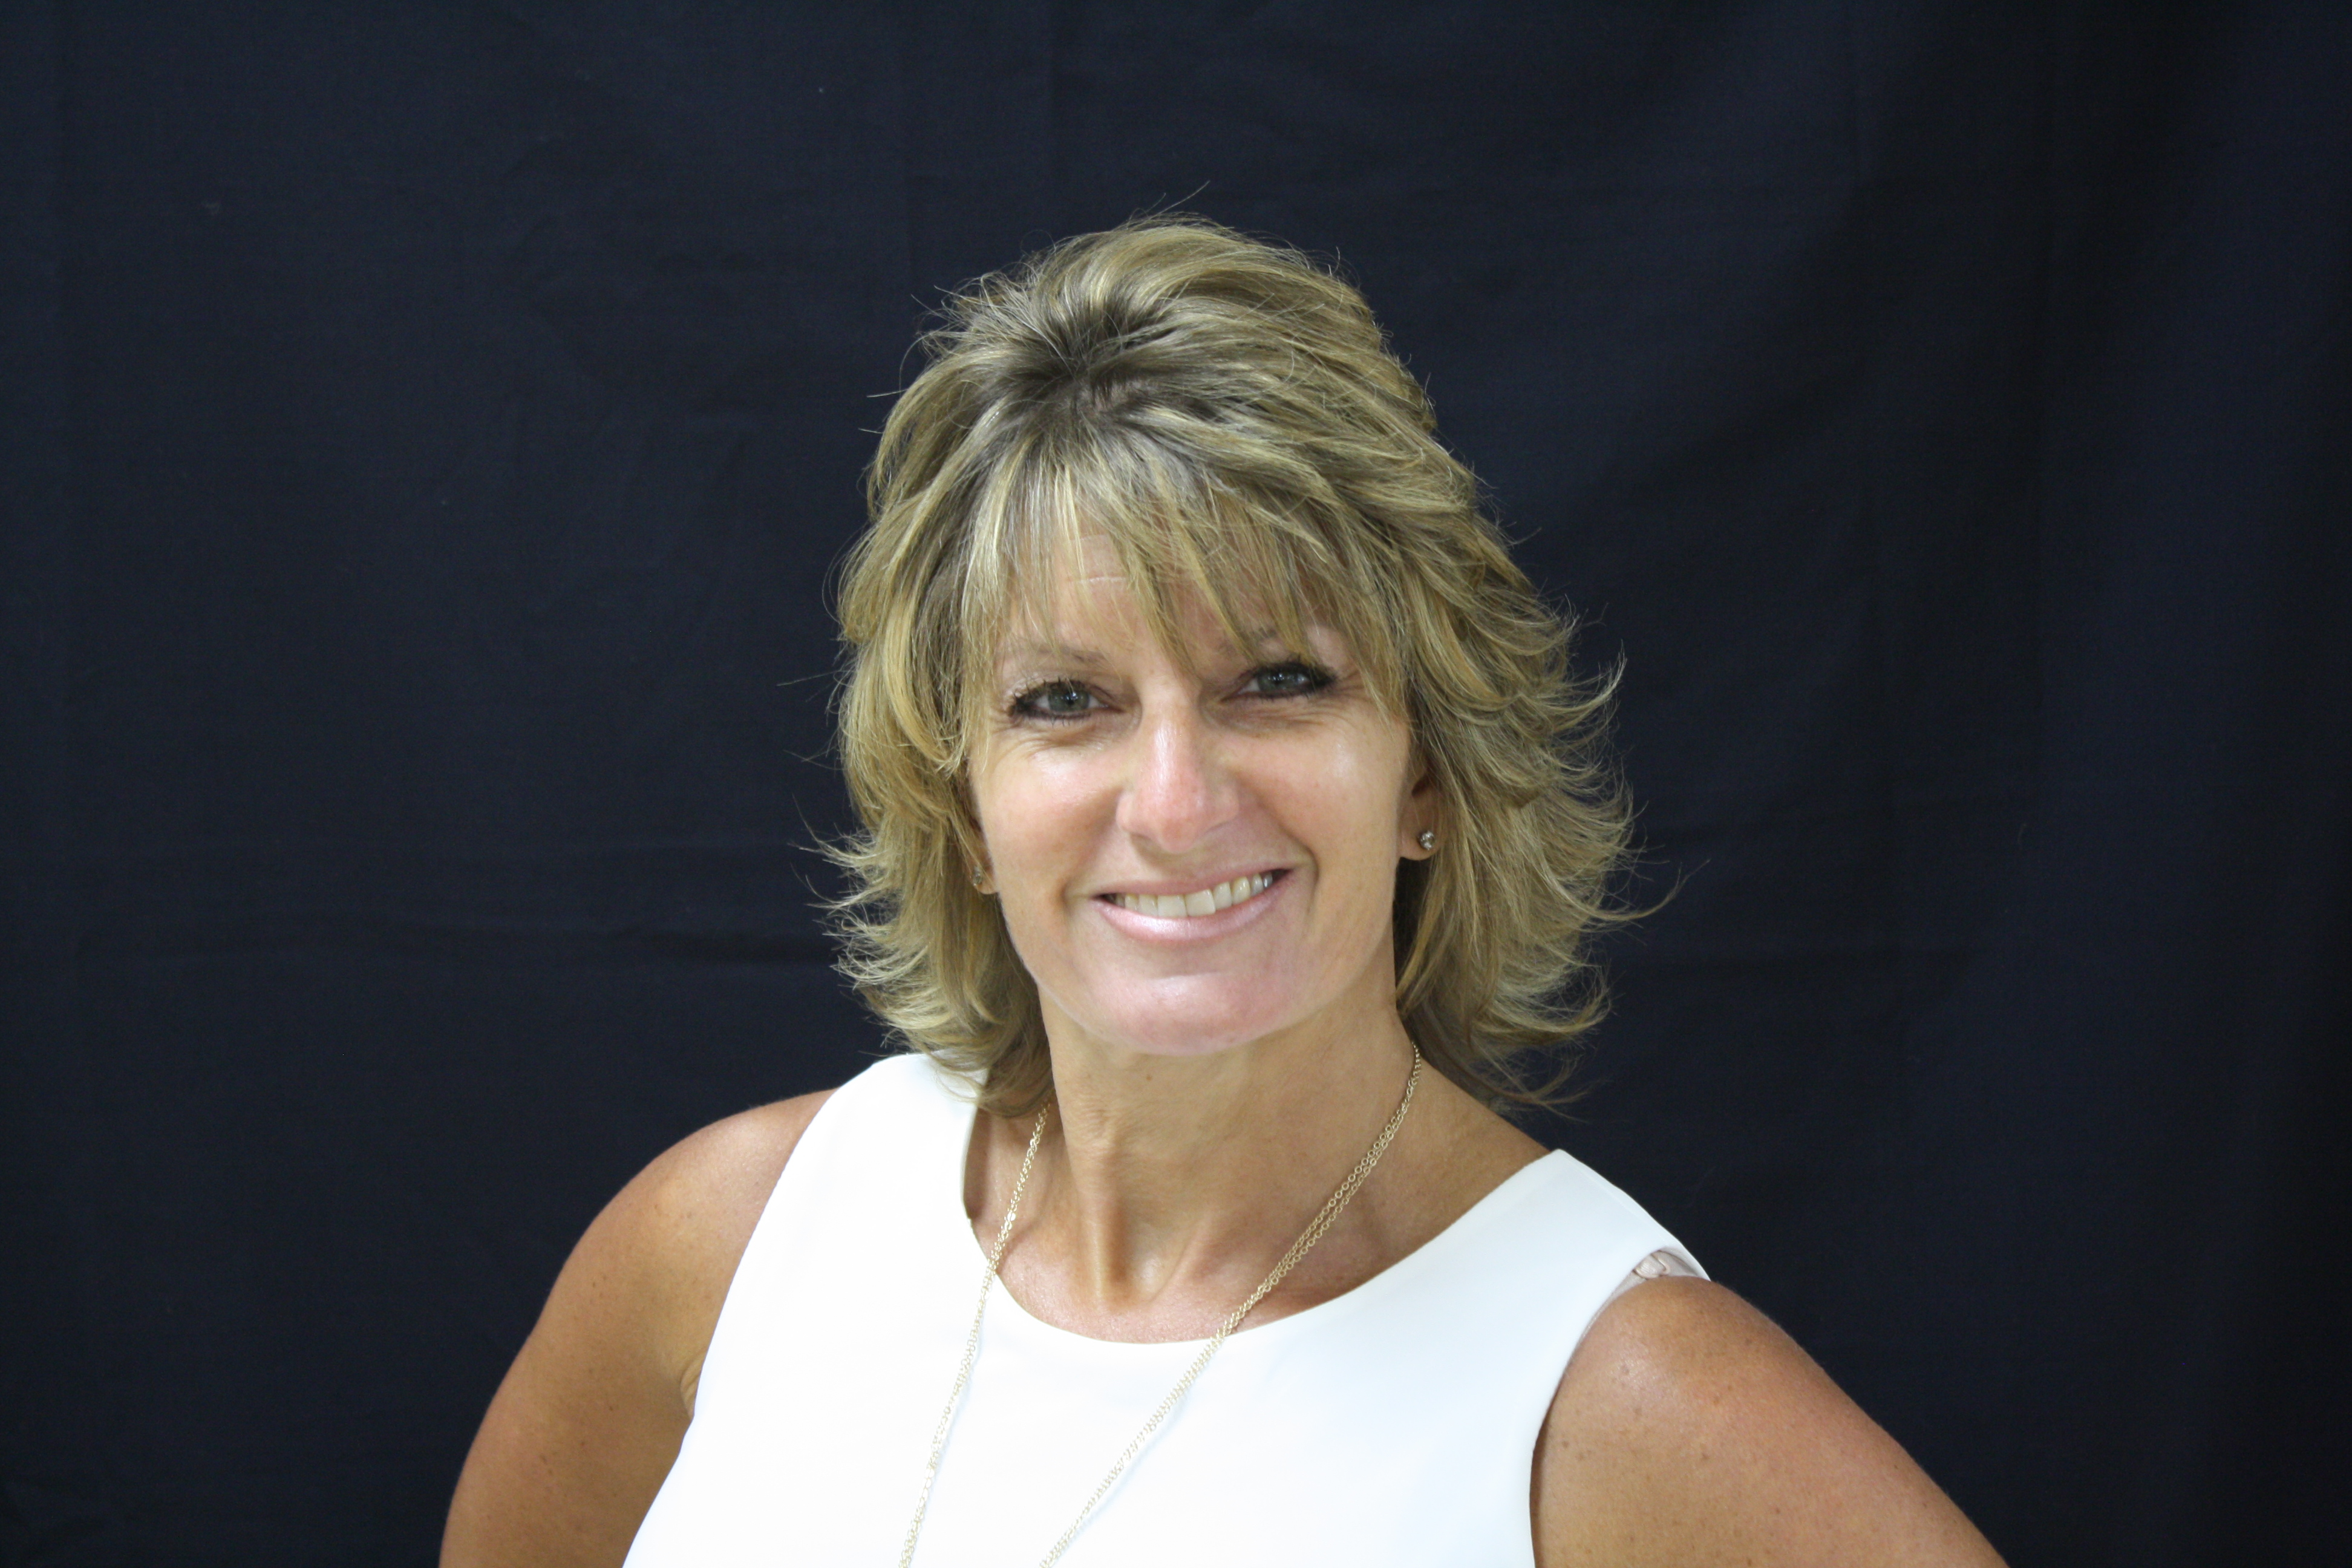 Kim Duvall : Administrative Assistant